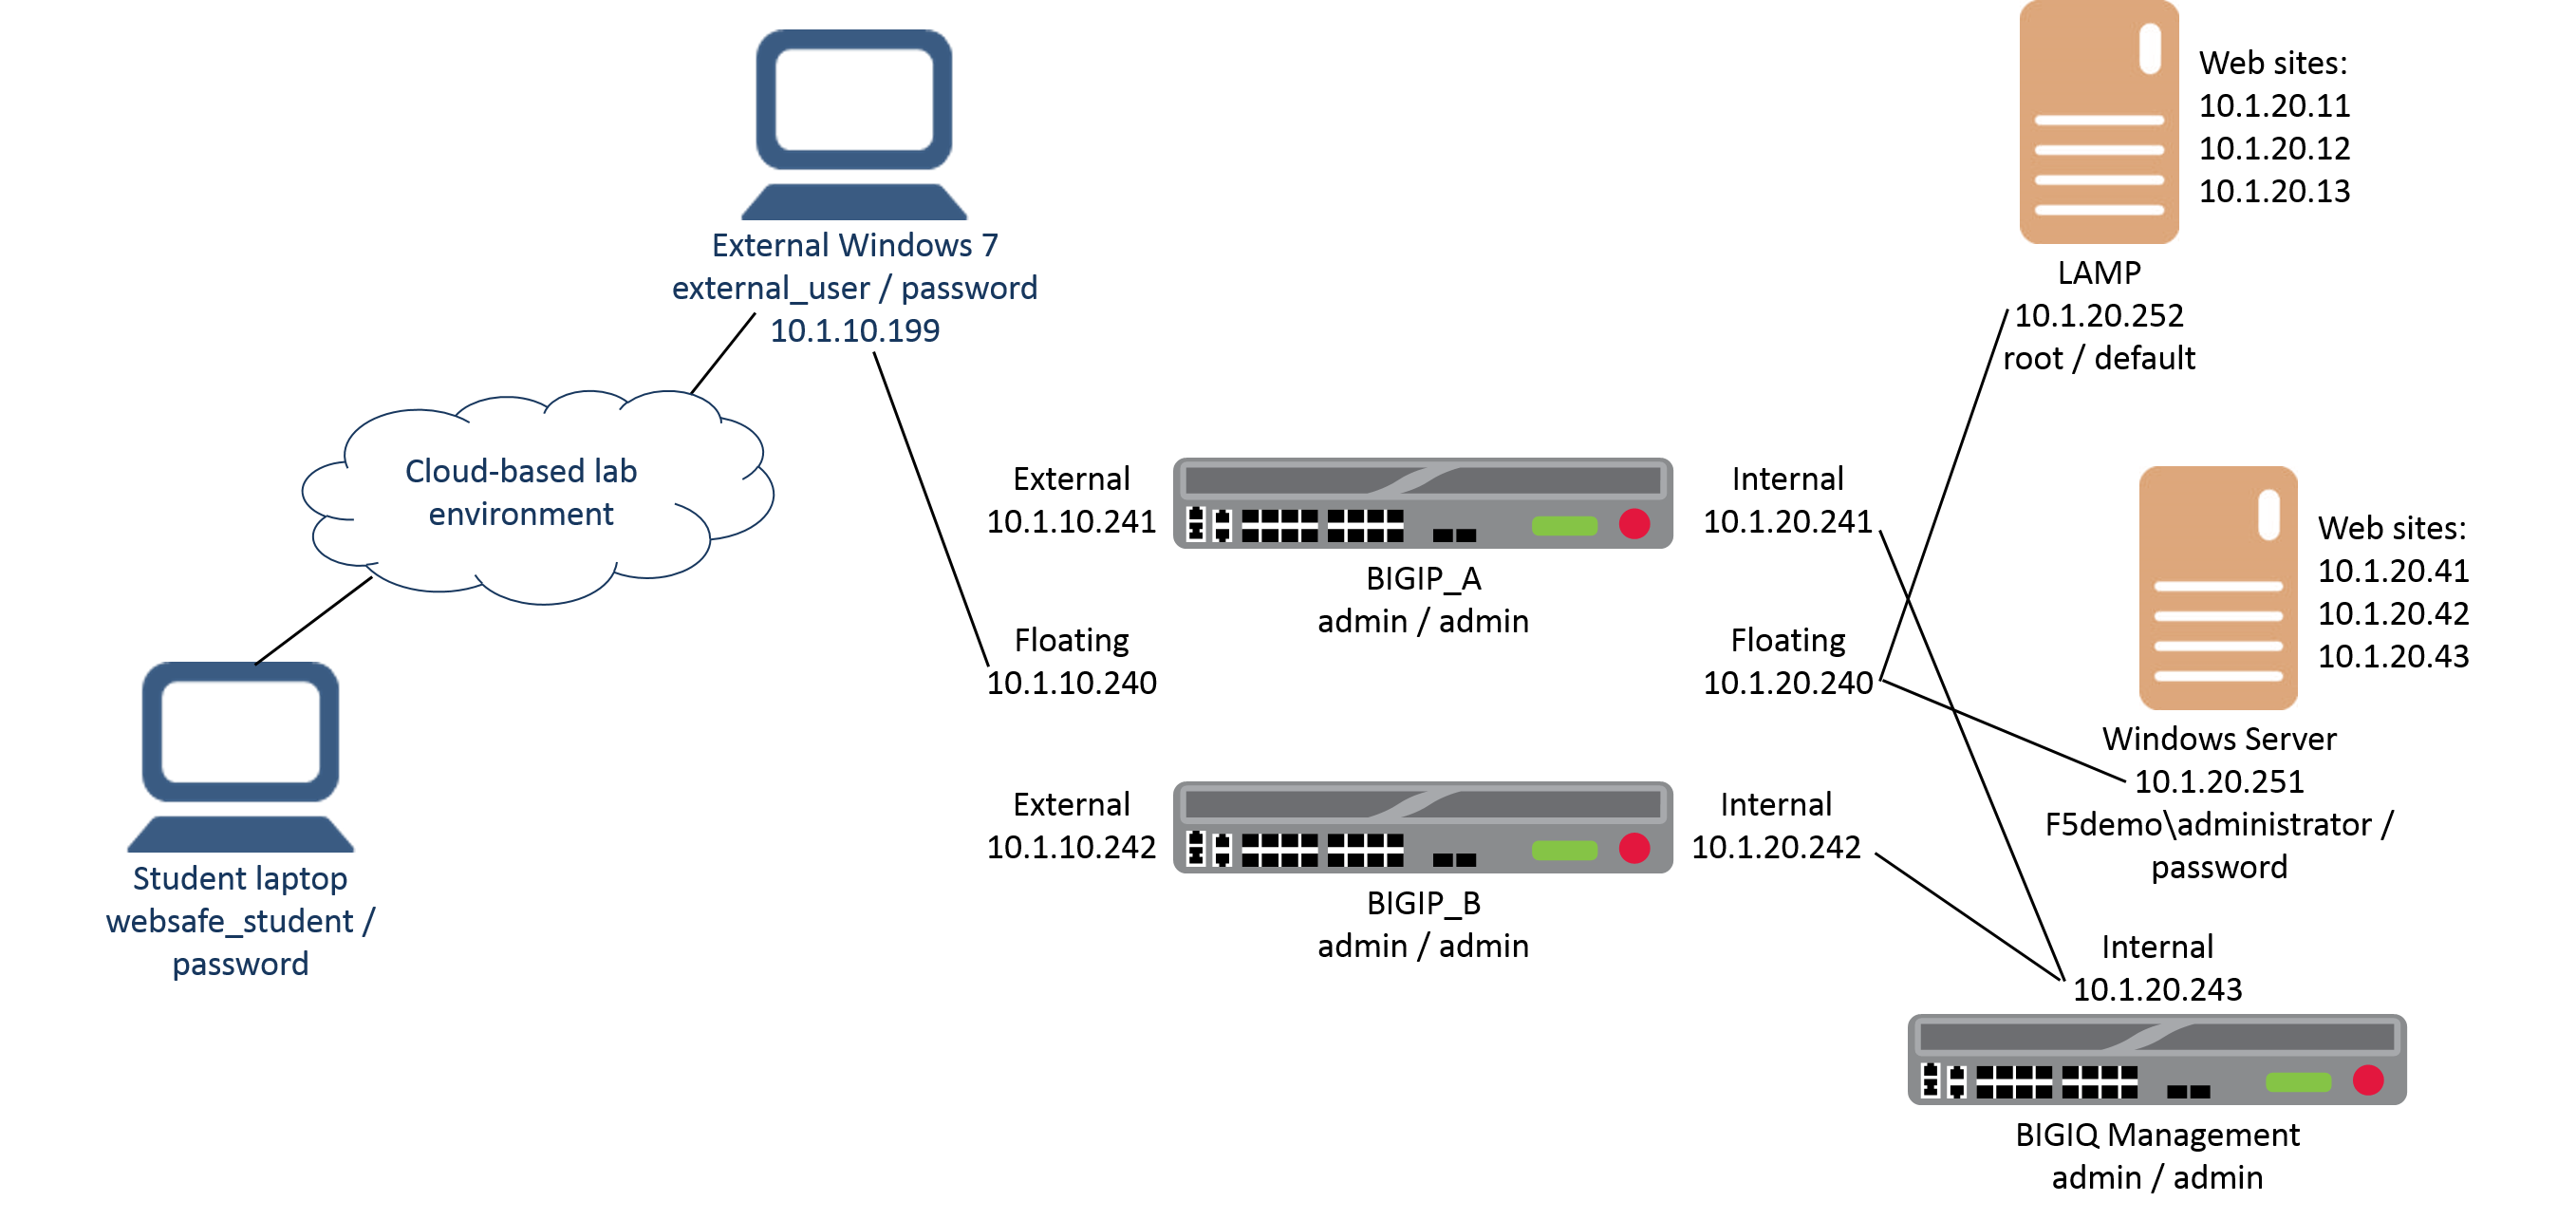 Lab Network Setup